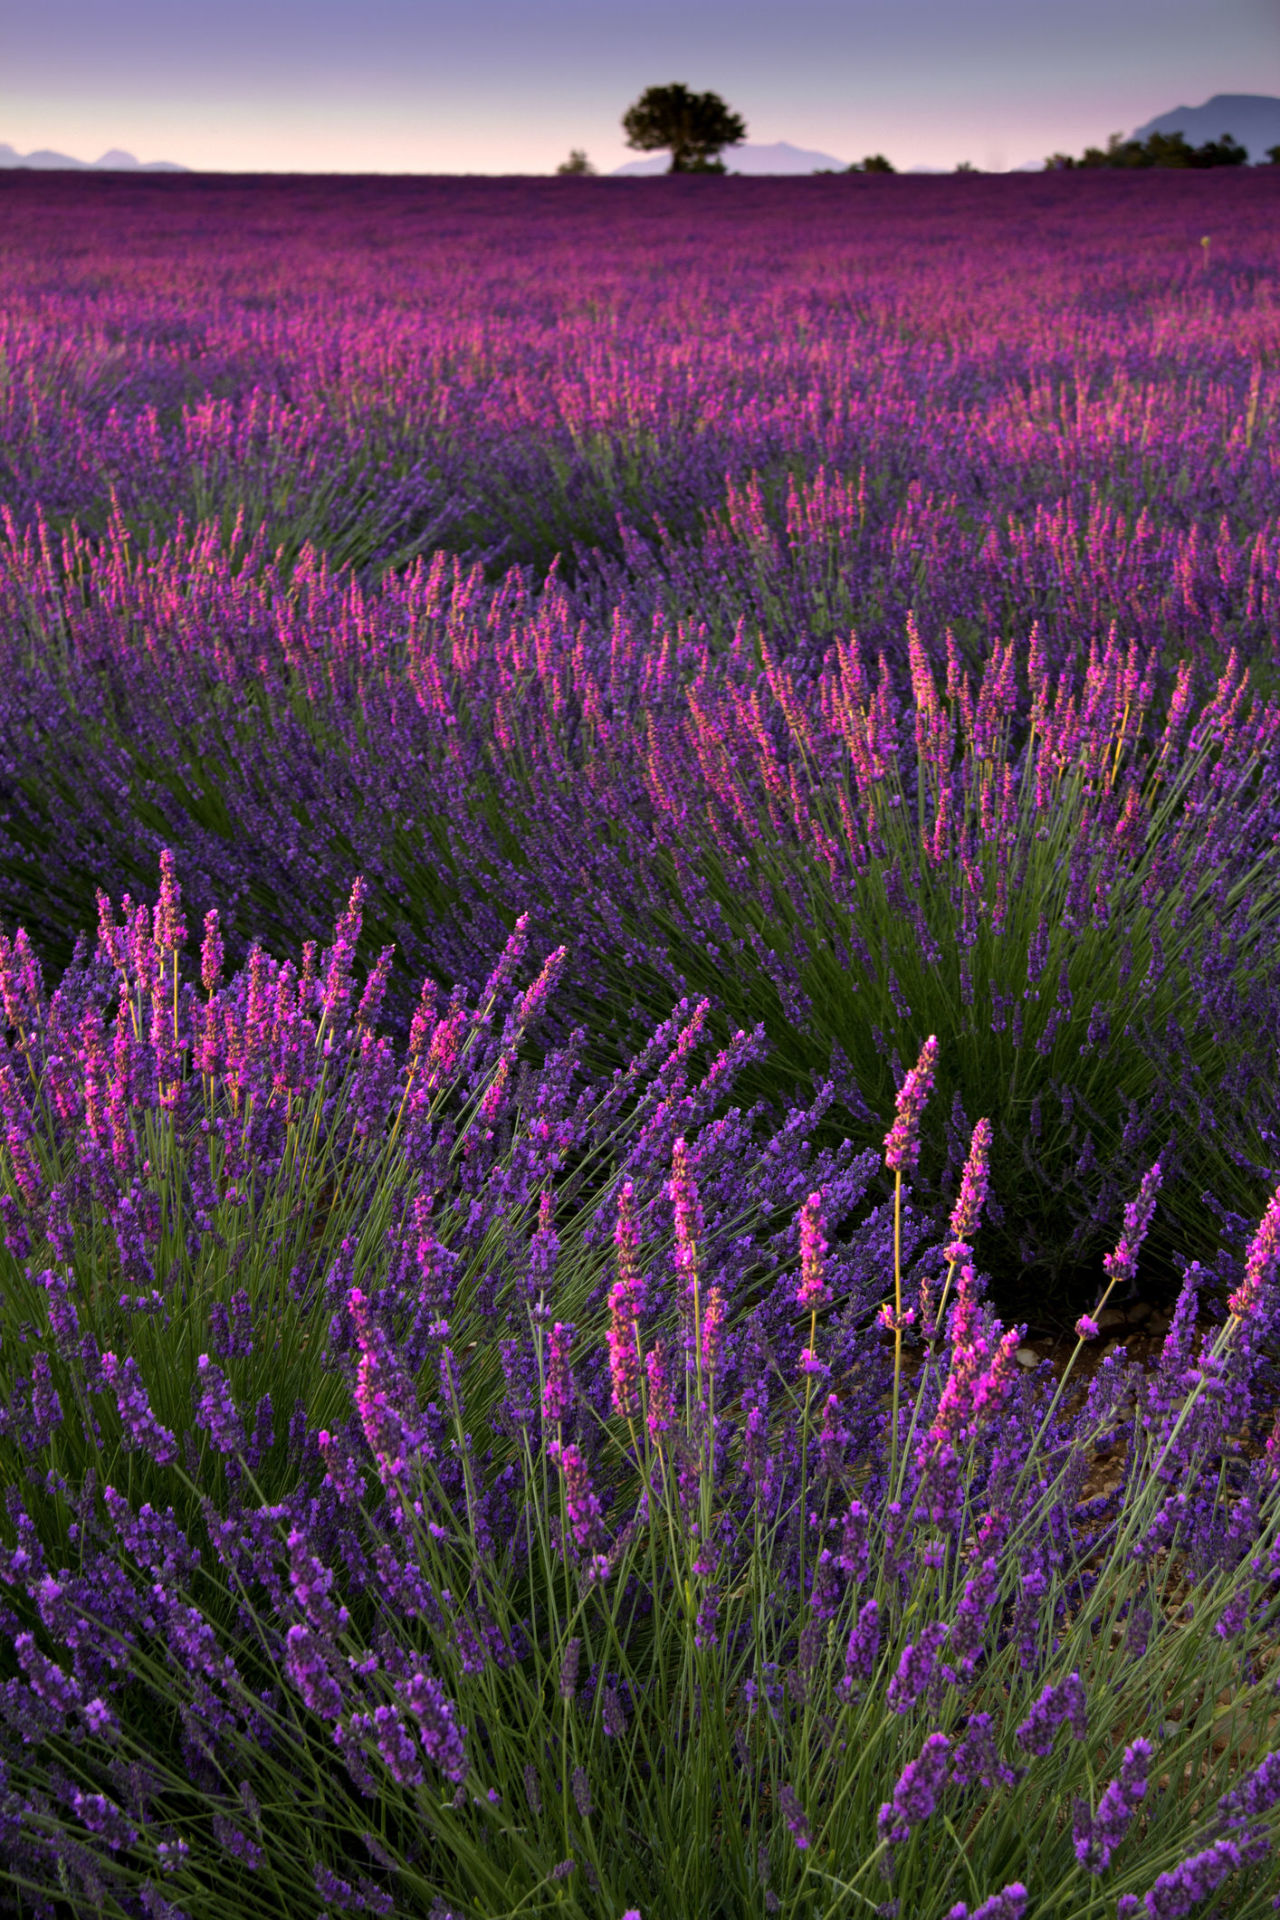 30 Great Lavender Plant Recipes and Uses - How to Grow Lavender